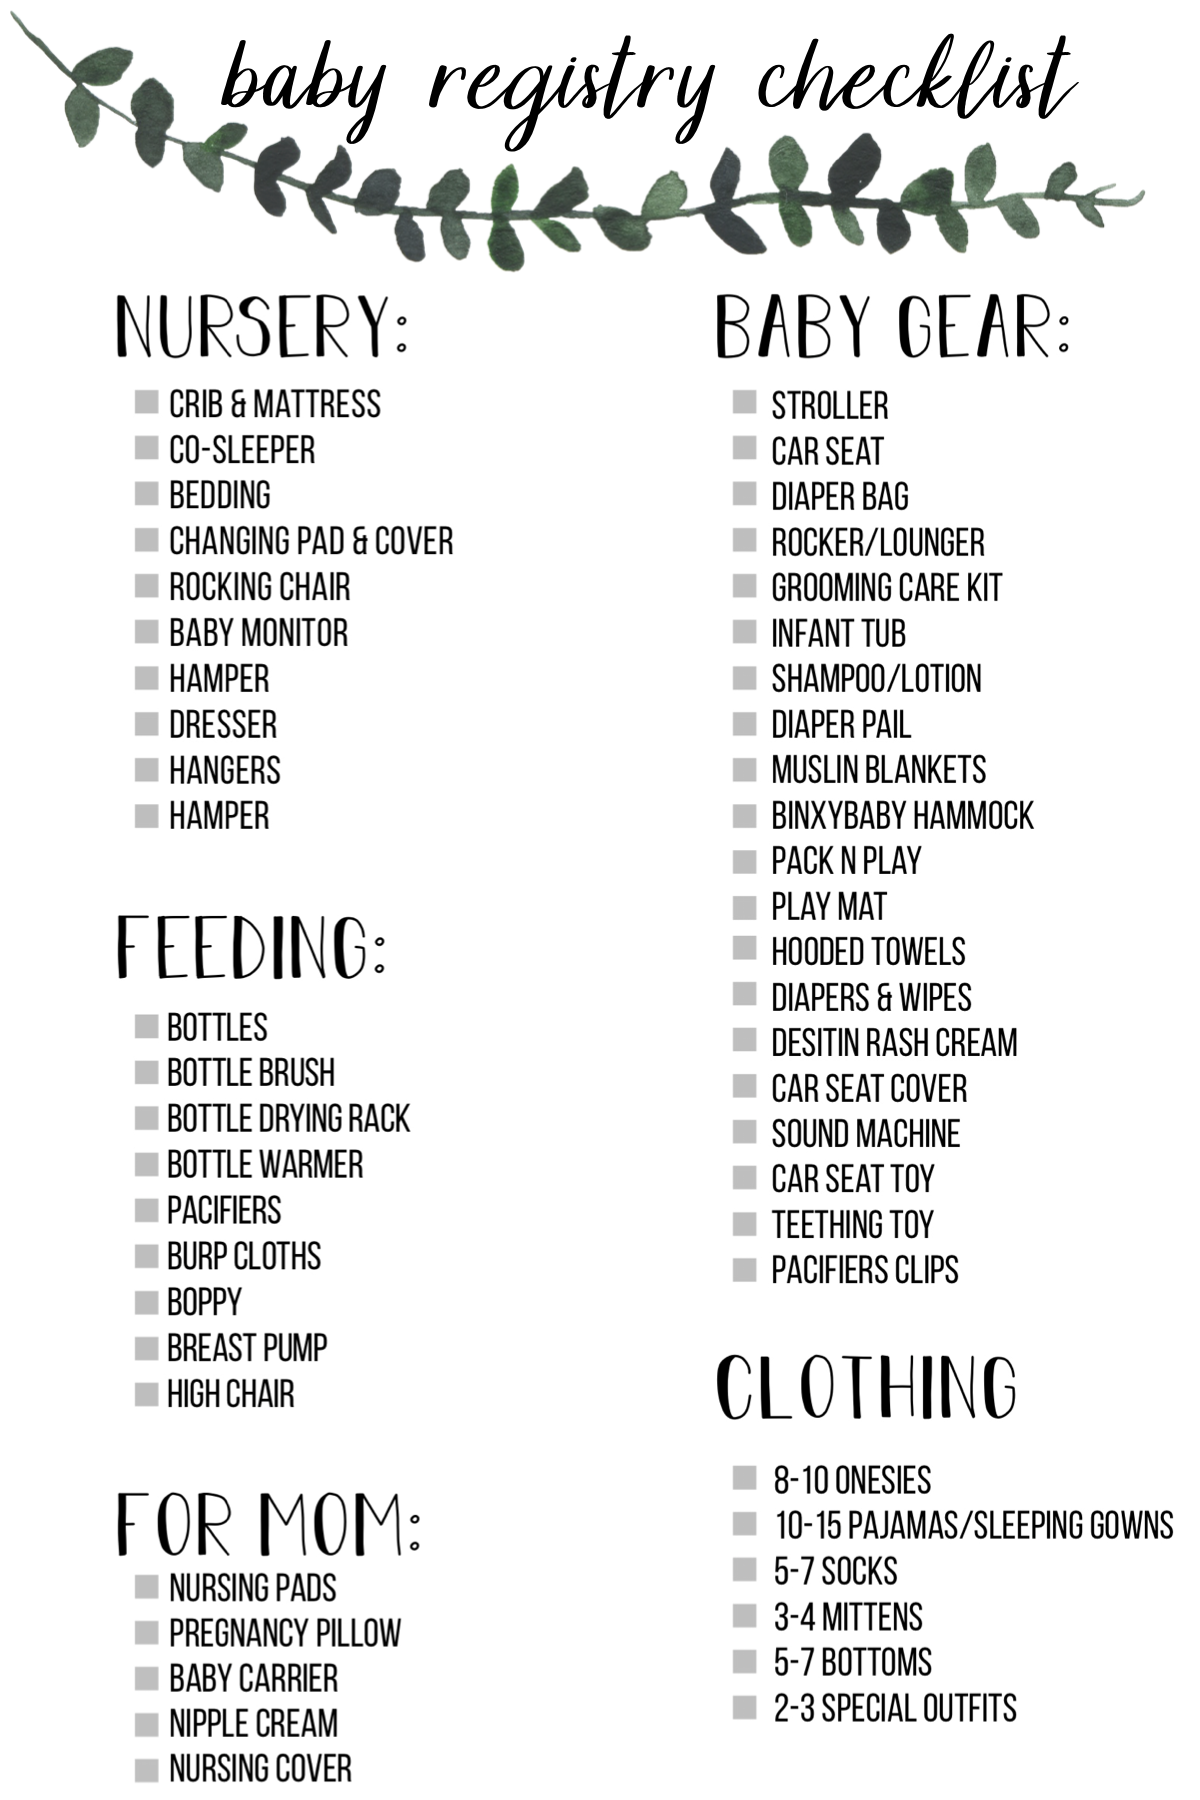 Baby Registry Checklist Must Have Items Baby Registration Baby Registry Baby Registry Checklist